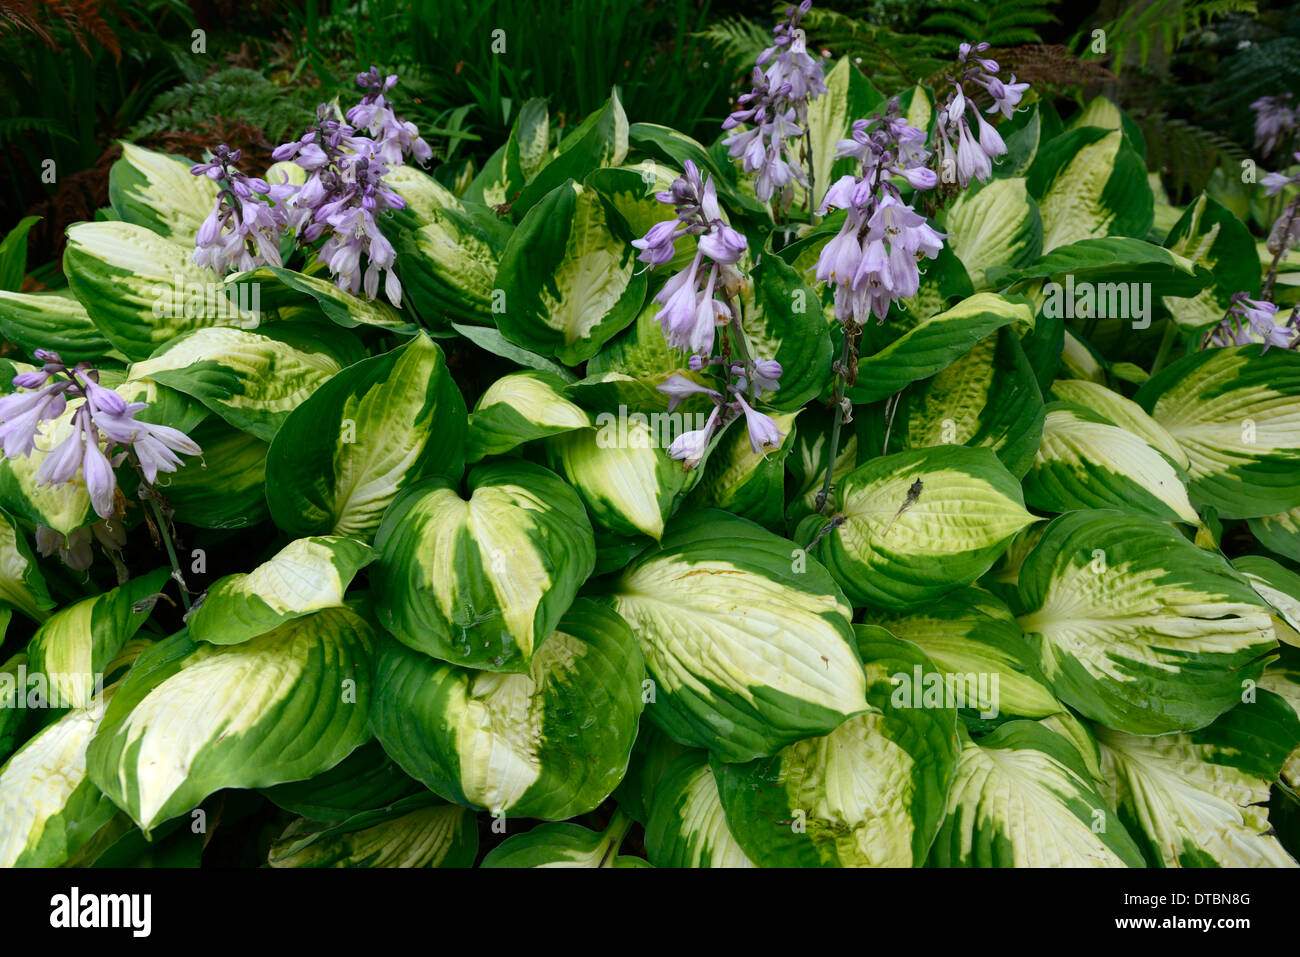 Hosta Green White Variegated Leaves Stock Photos Hosta Green White